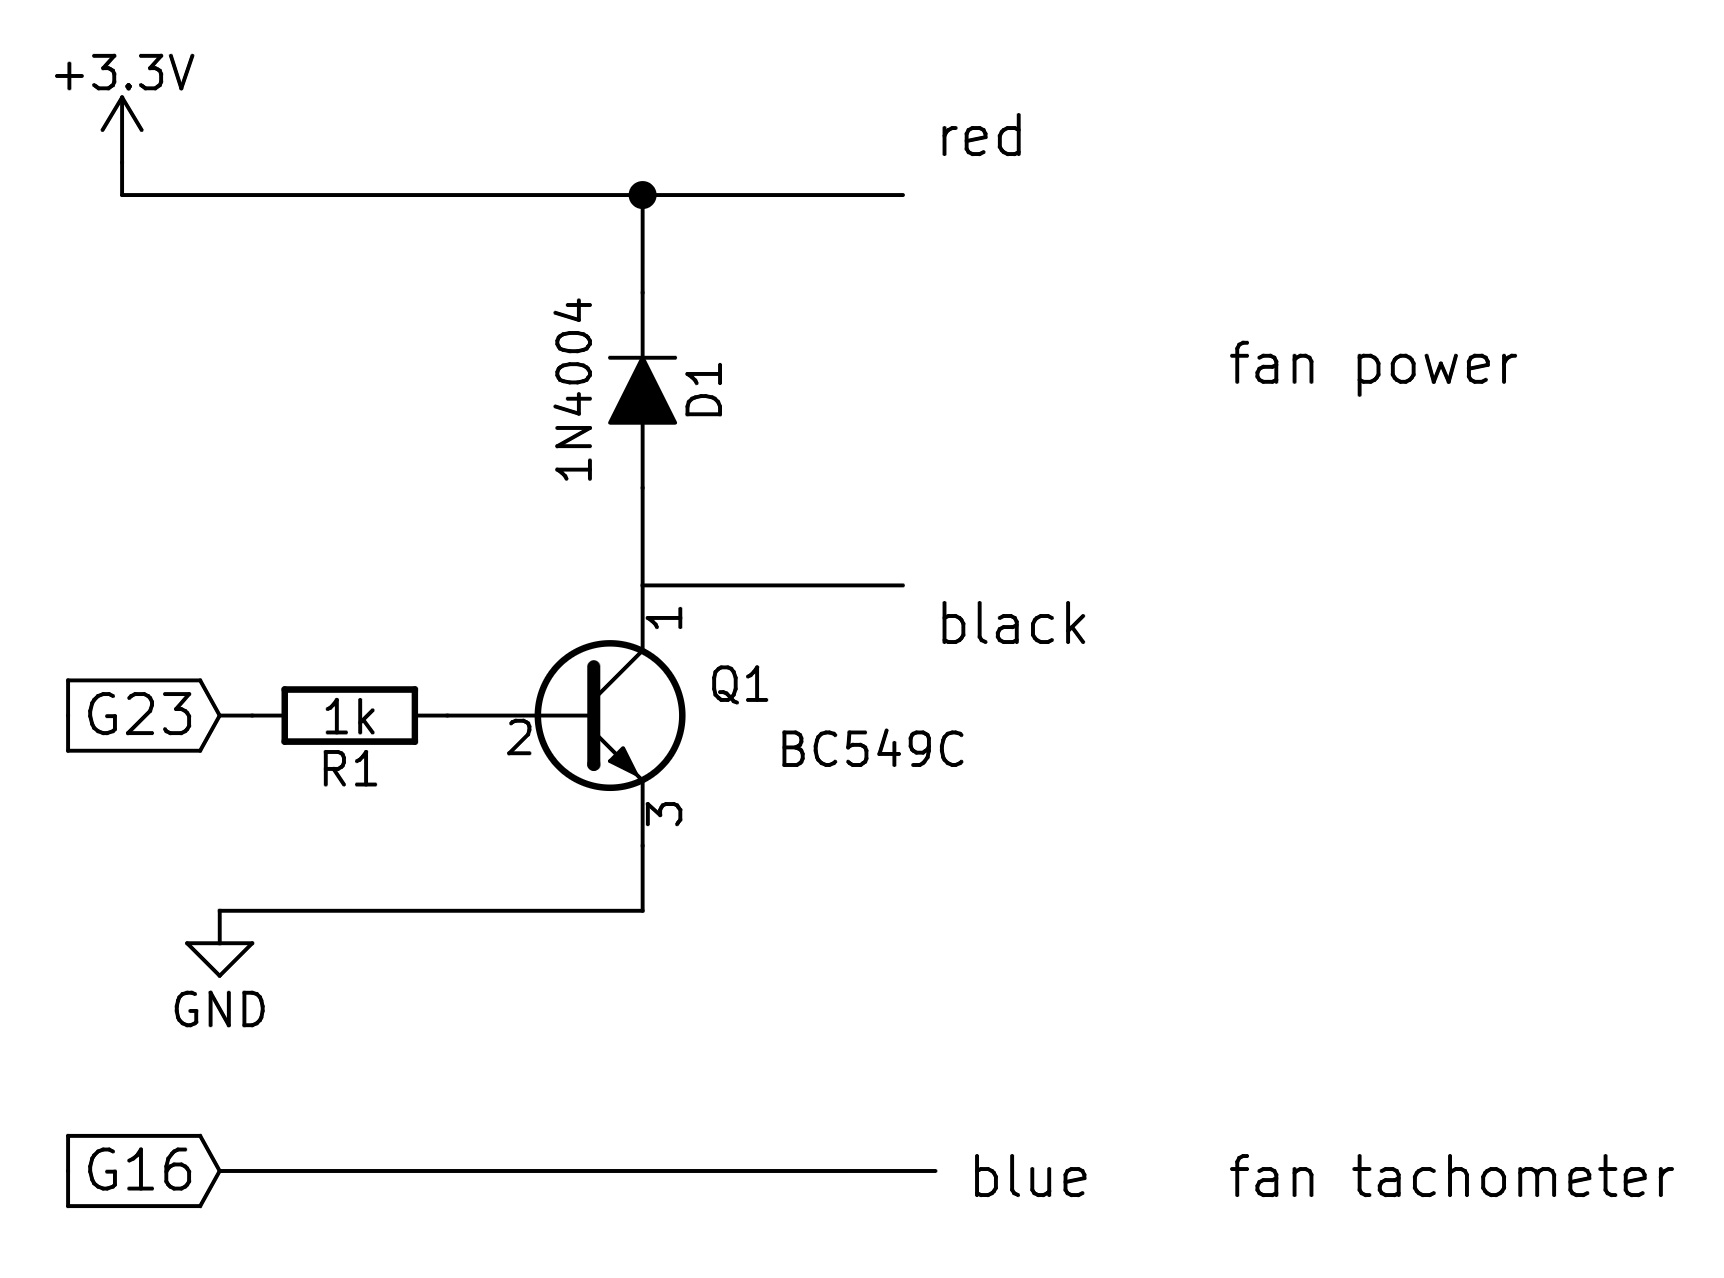 wiring 3w homebridge pwm fan pwm fan wiring diagram at aneh.co